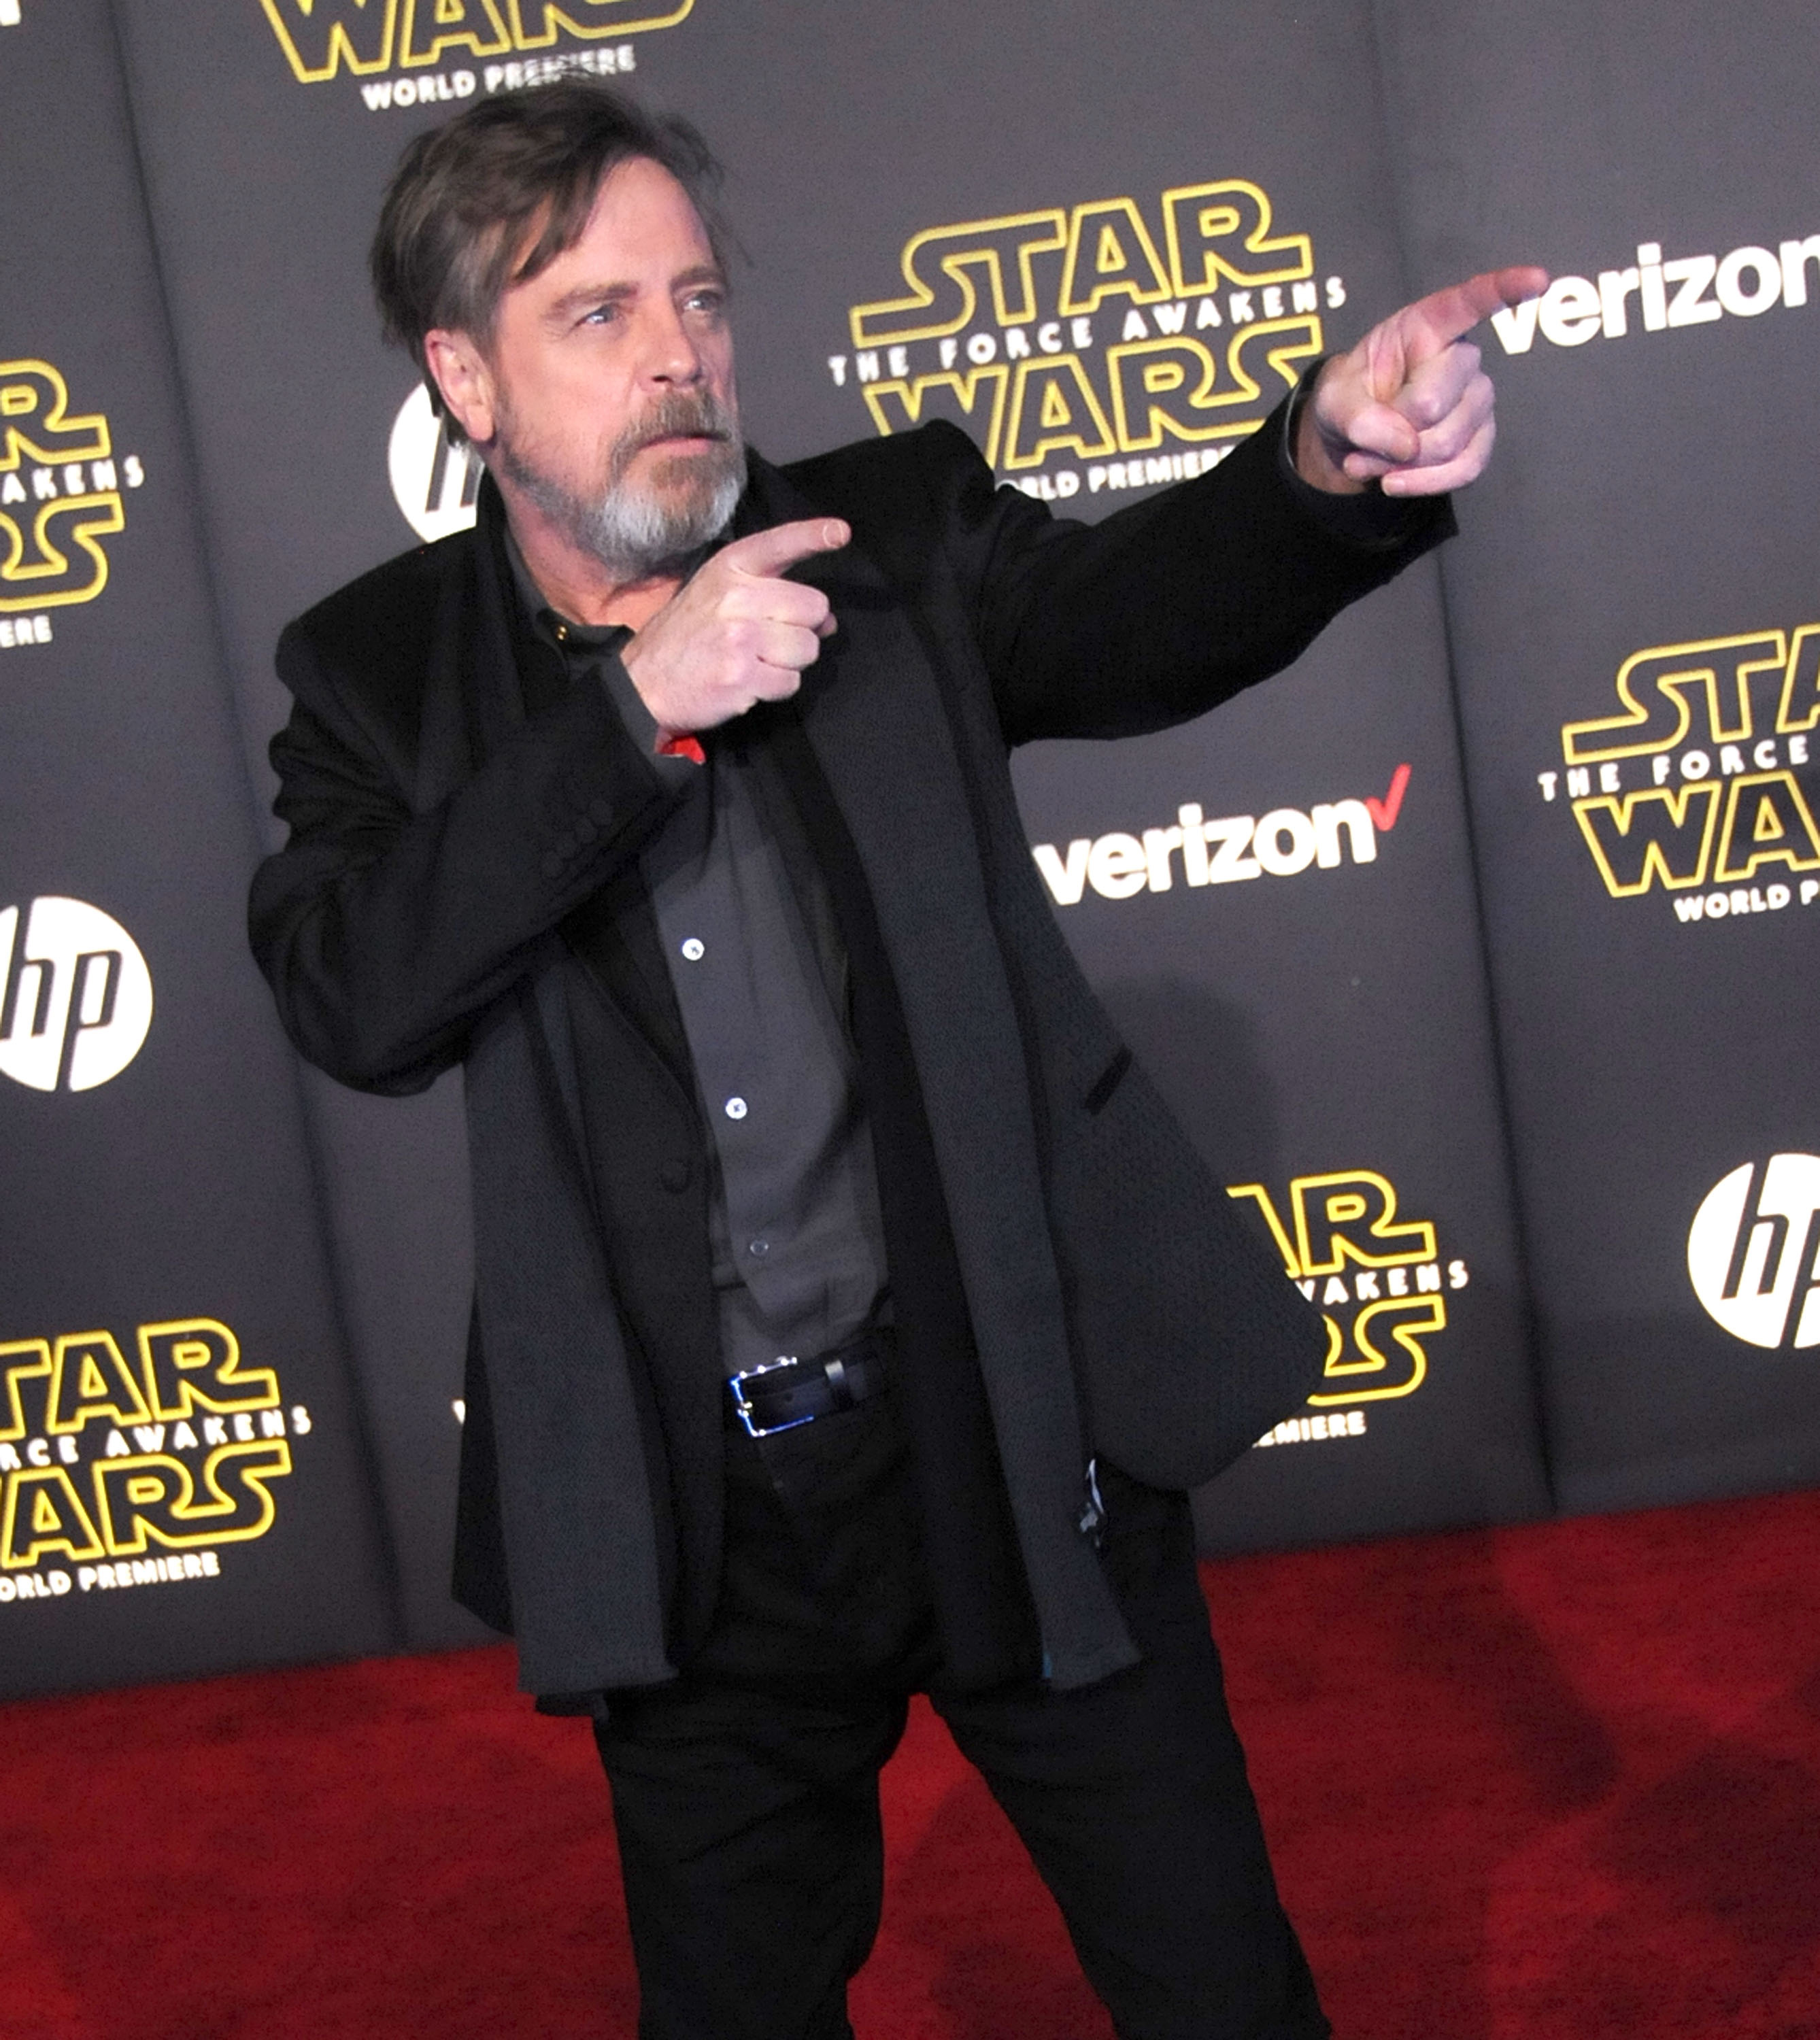 attends the Premiere of Walt Disney Pictures and Lucasfilm's 'Star Wars: The Force Awakens' on December 14, 2015 in Hollywood